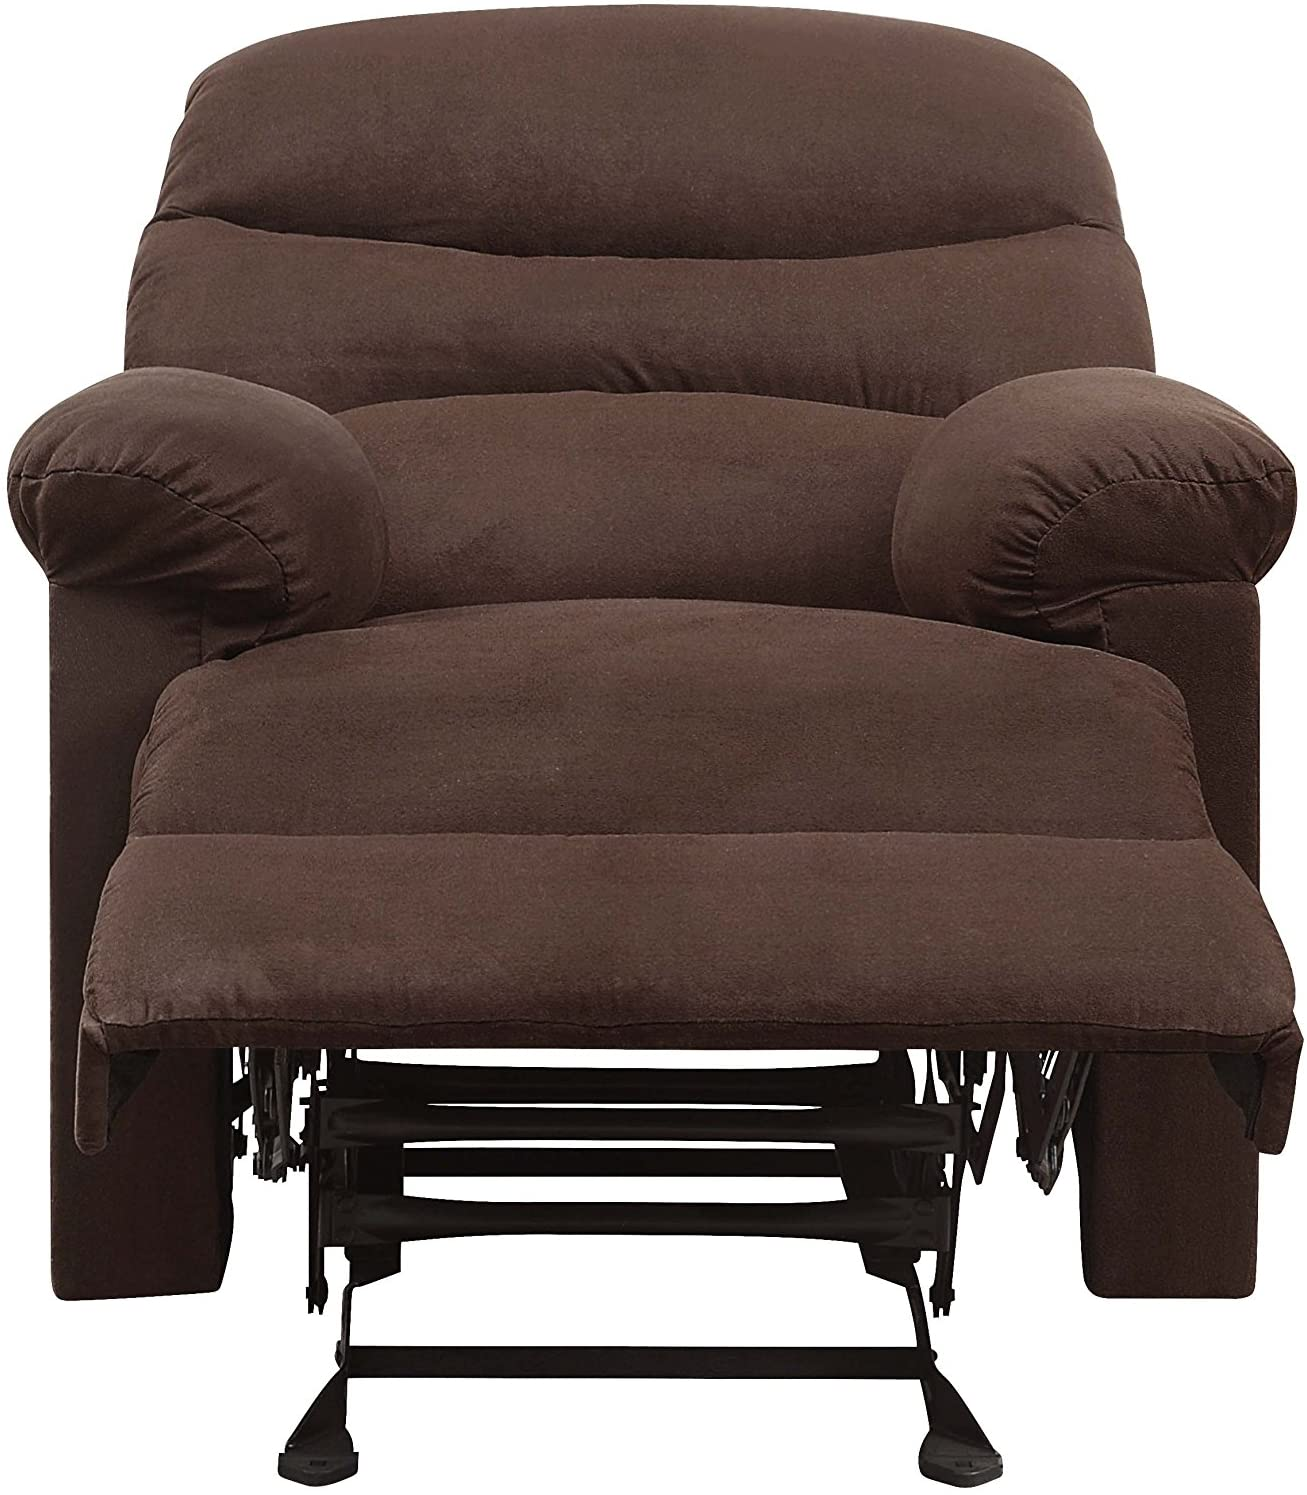 Acme Arcadia Recliner Review